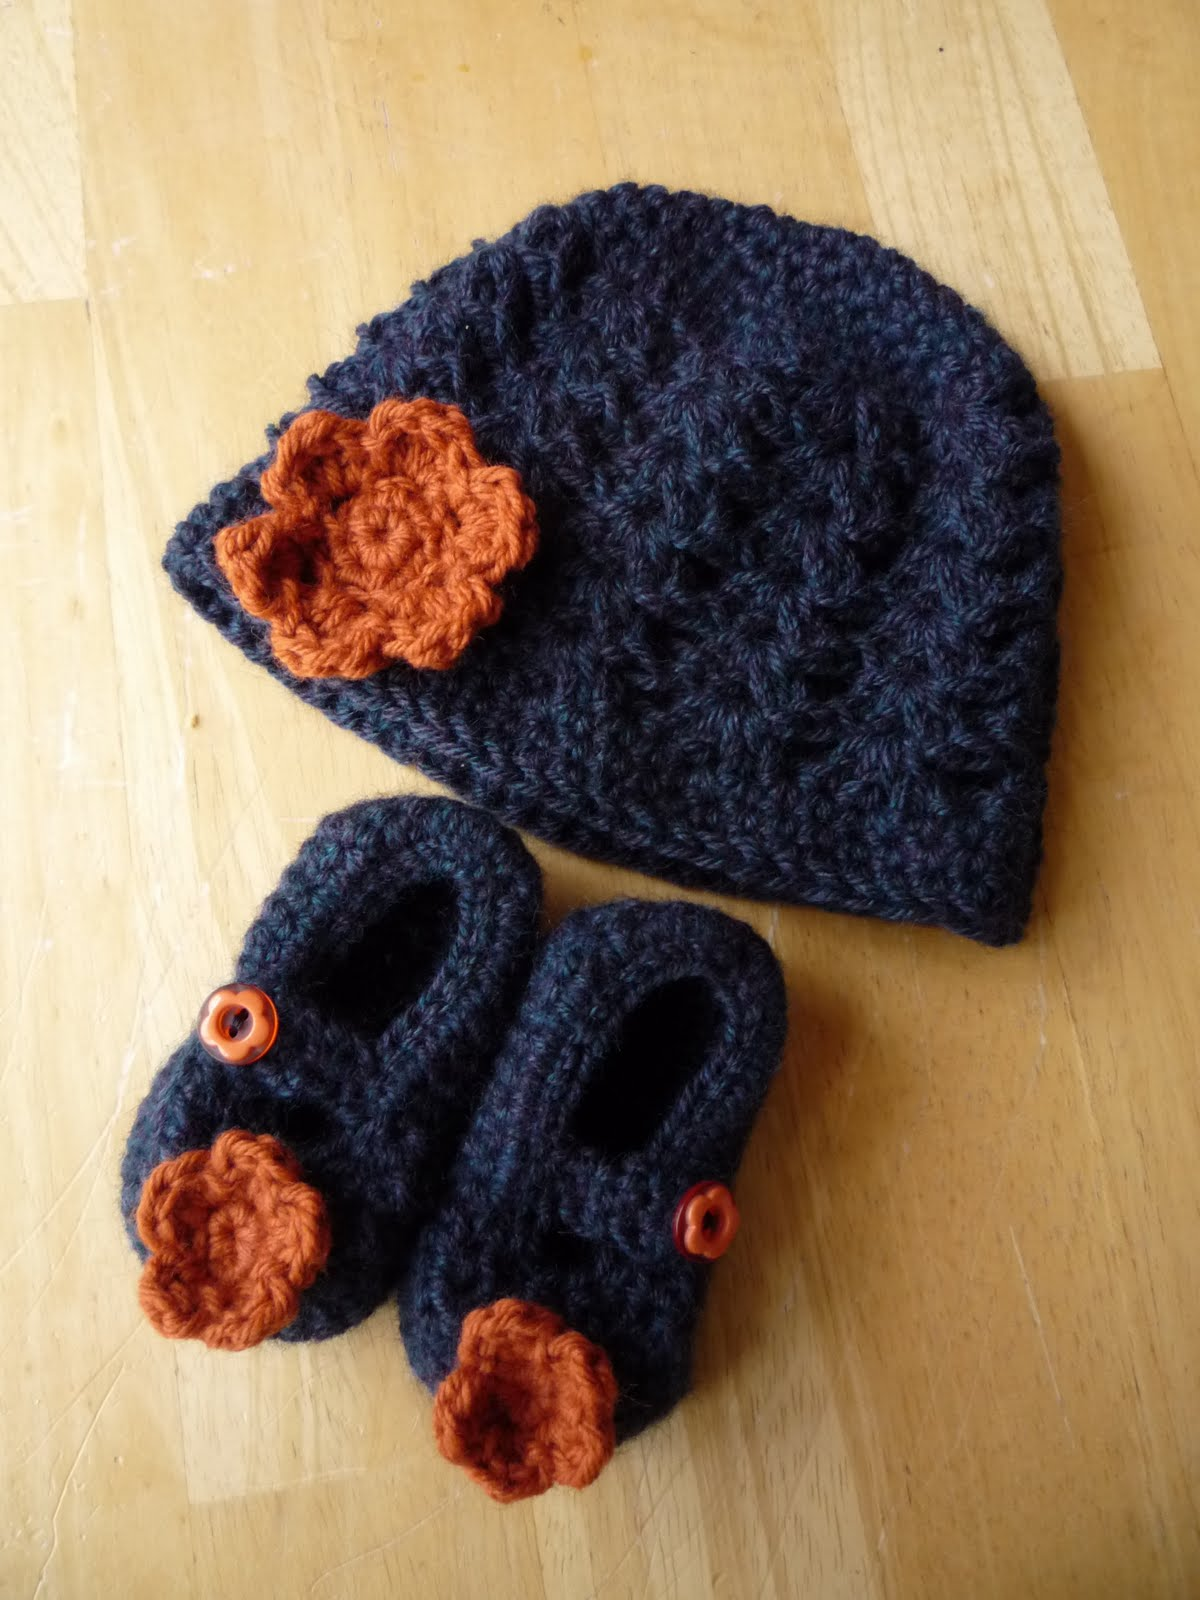 Free Crochet Patterns For Newborn Props : Baby Crochet and Photo Props : HappyBabyCrochet